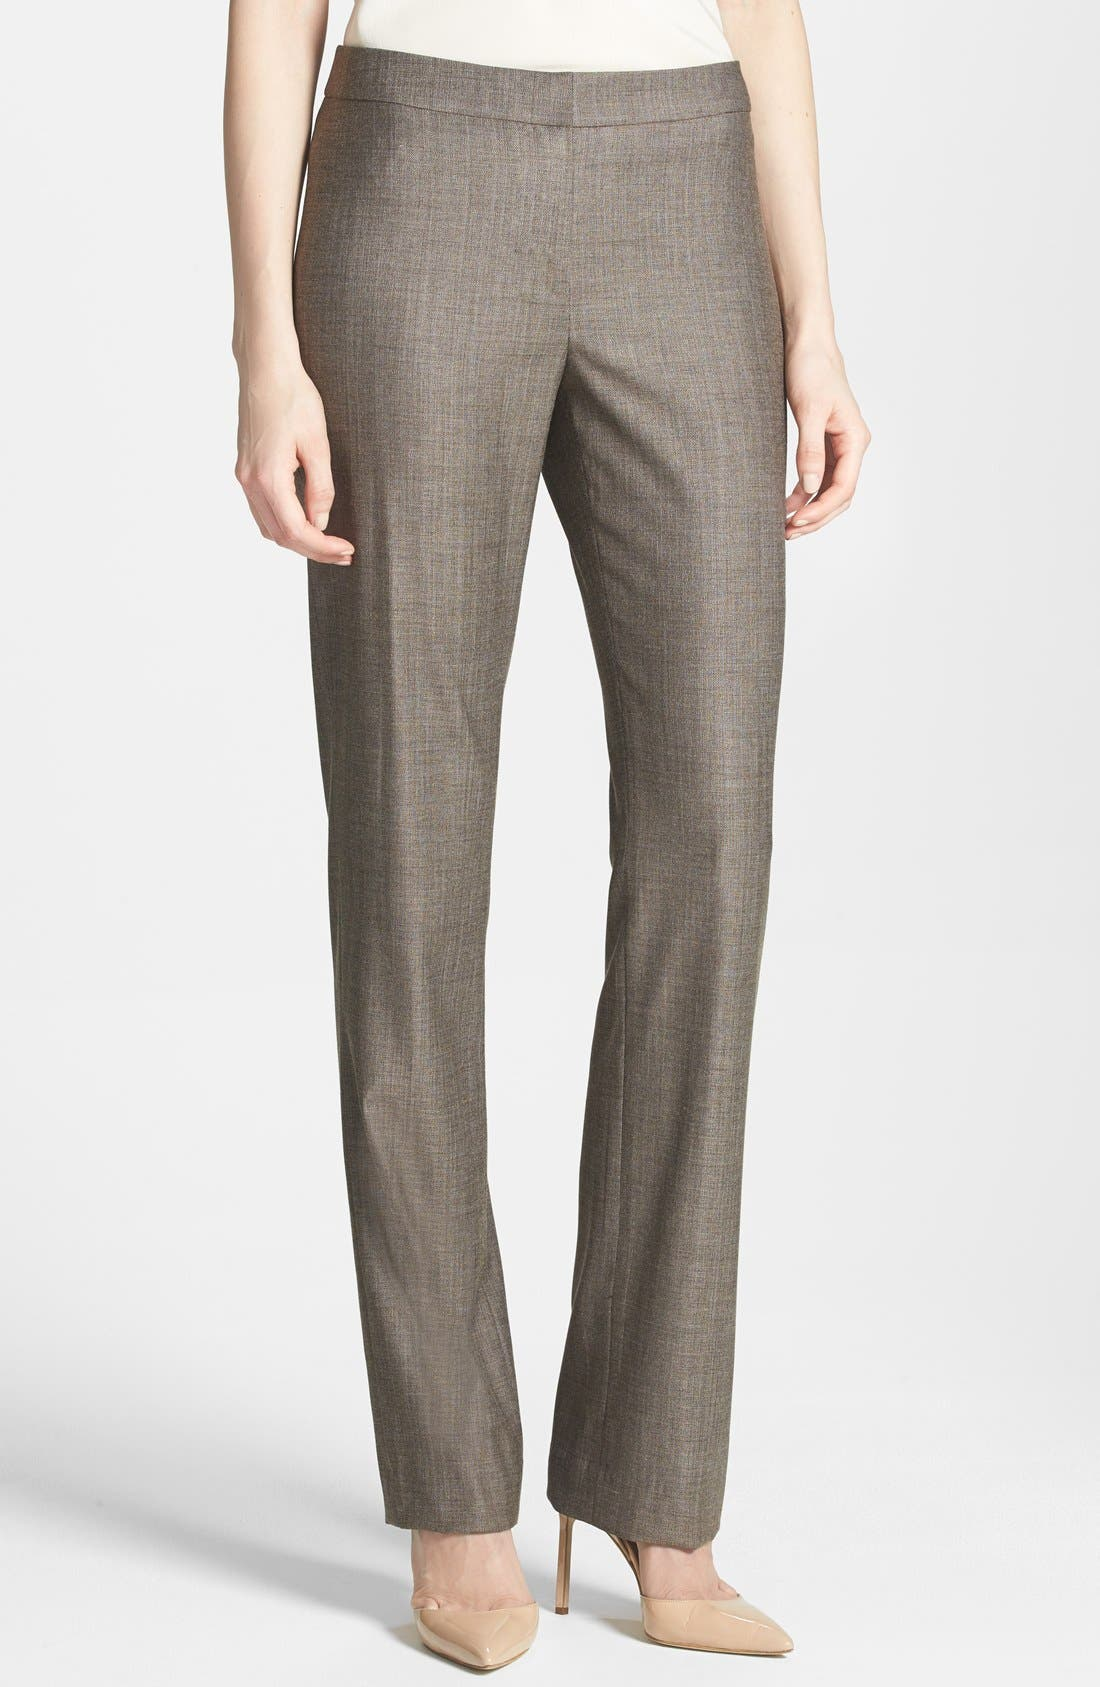 Main Image - Lafayette 148 New York 'Barrow - Bridgeport' Stretch Wool Suiting Pants (Petite)